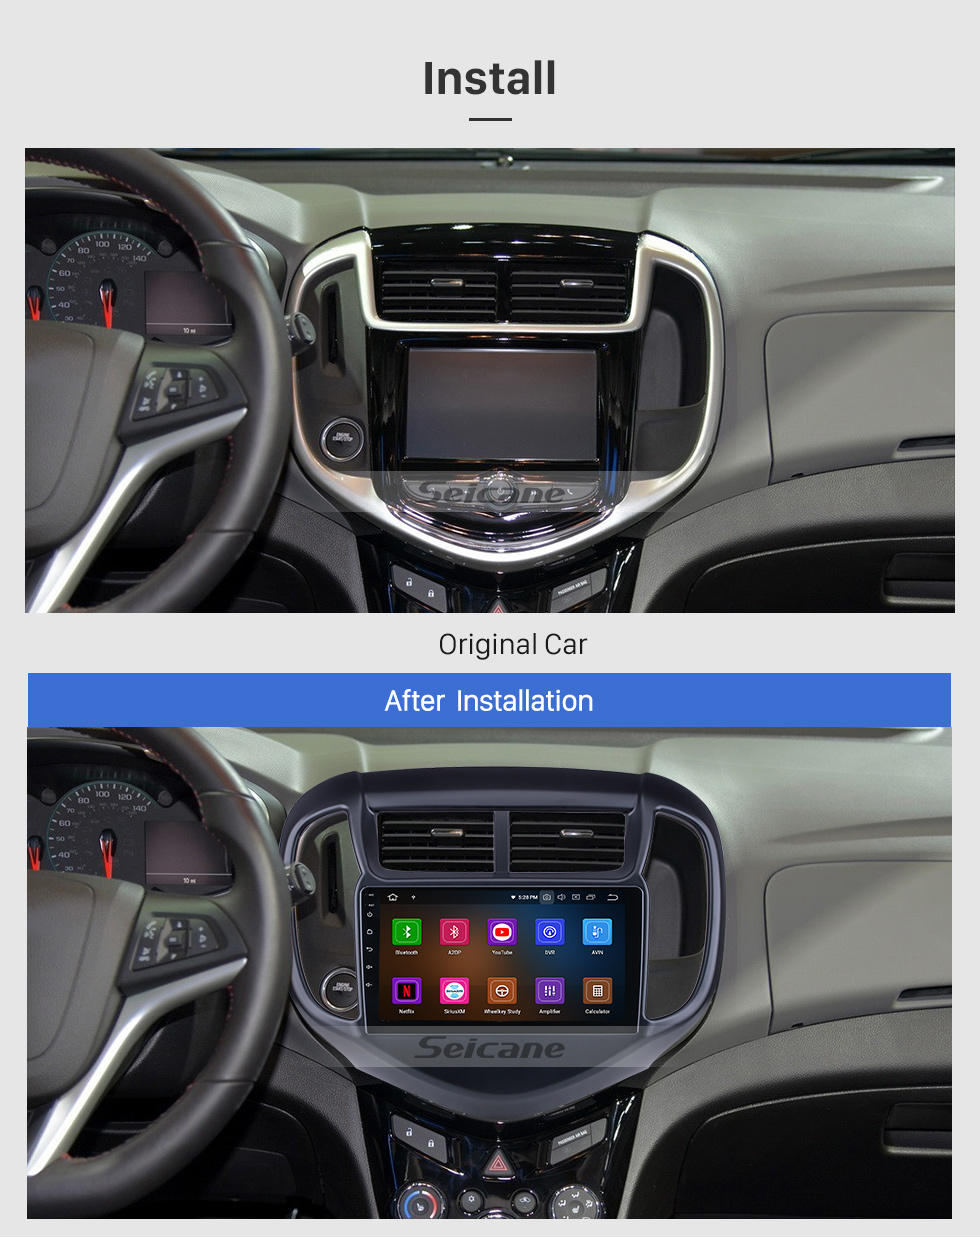 Seicane OEM Android 10.0 for 2016 Chevy Chevrolet Aveo Radio with Bluetooth 9 inch HD Touchscreen GPS Navigation System Carplay support DSP